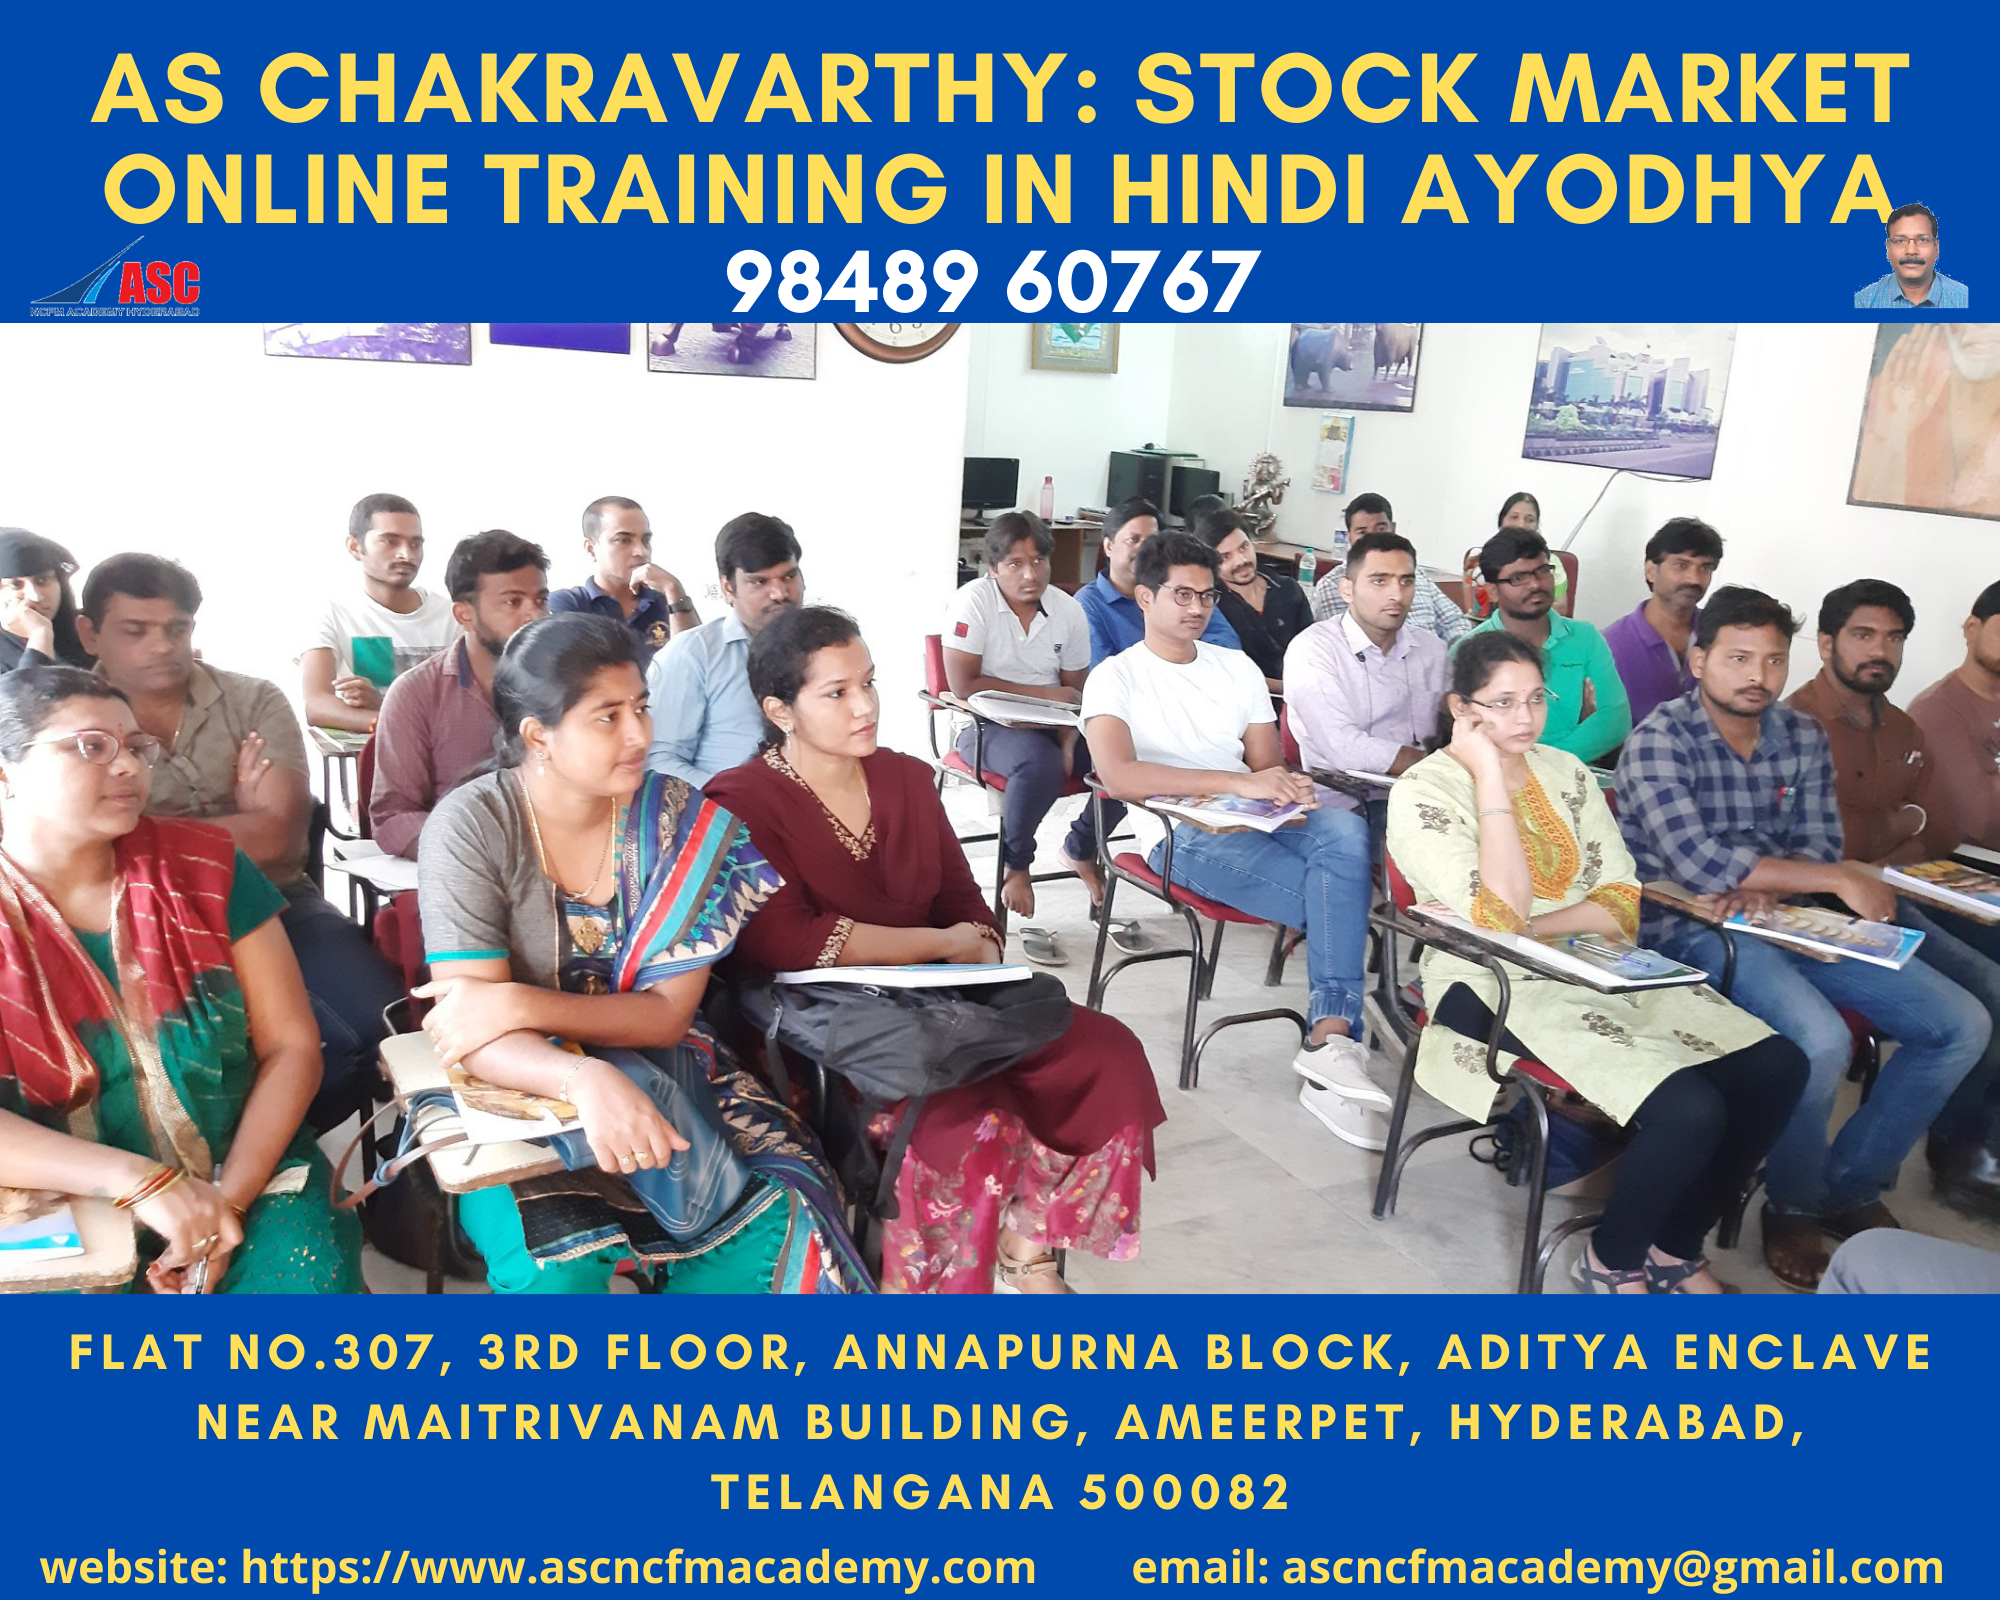 Online Stock Market Technical Training in Hindi Ayodhya